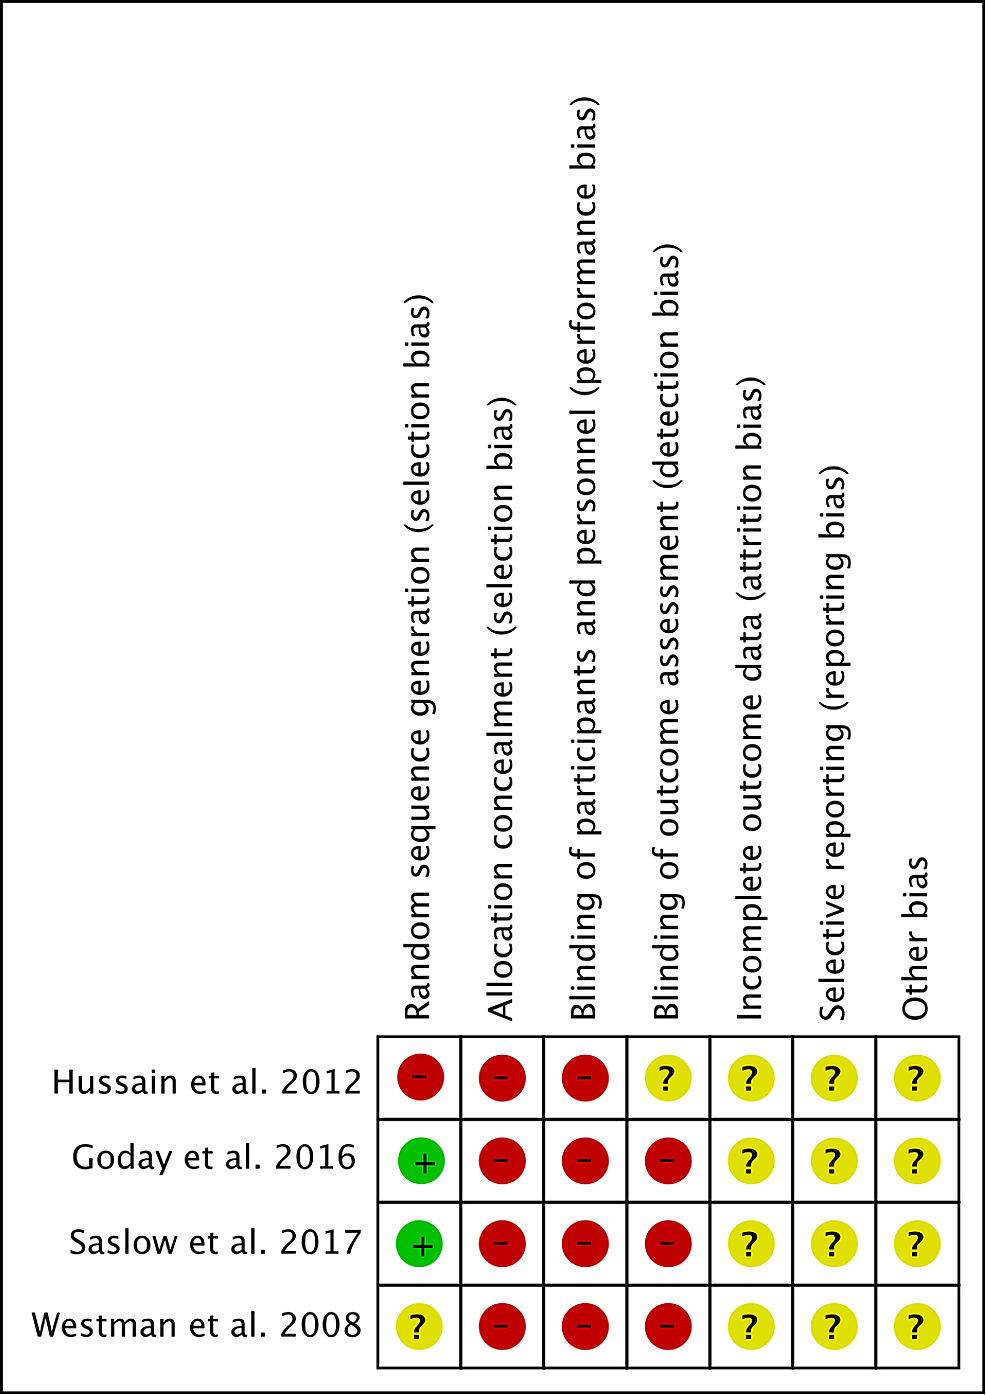 Risk-of-bias-summary:-a-review-of-the-authors'-judgments-about-each-risk-of-bias-item-for-each-included-study